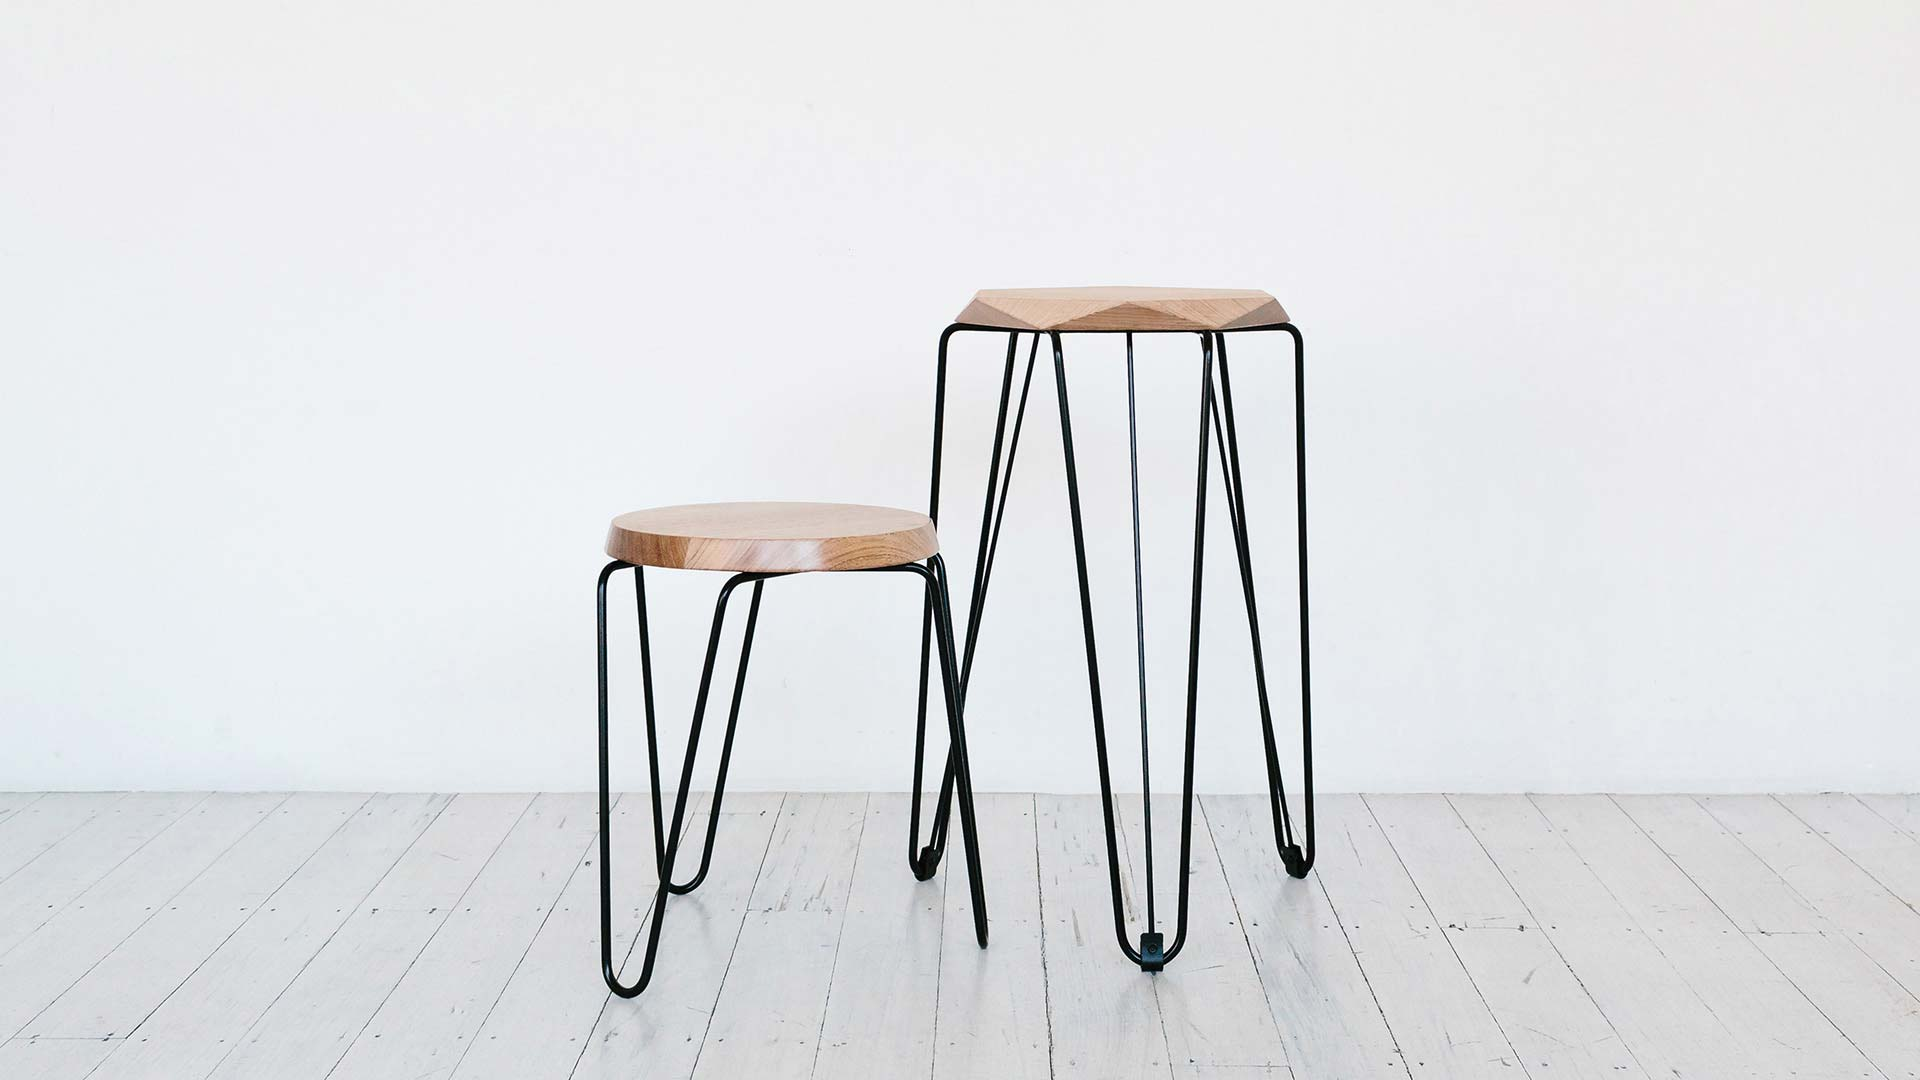 contemporary furniture designed made in melbourne australia tall short stools natural timber top black